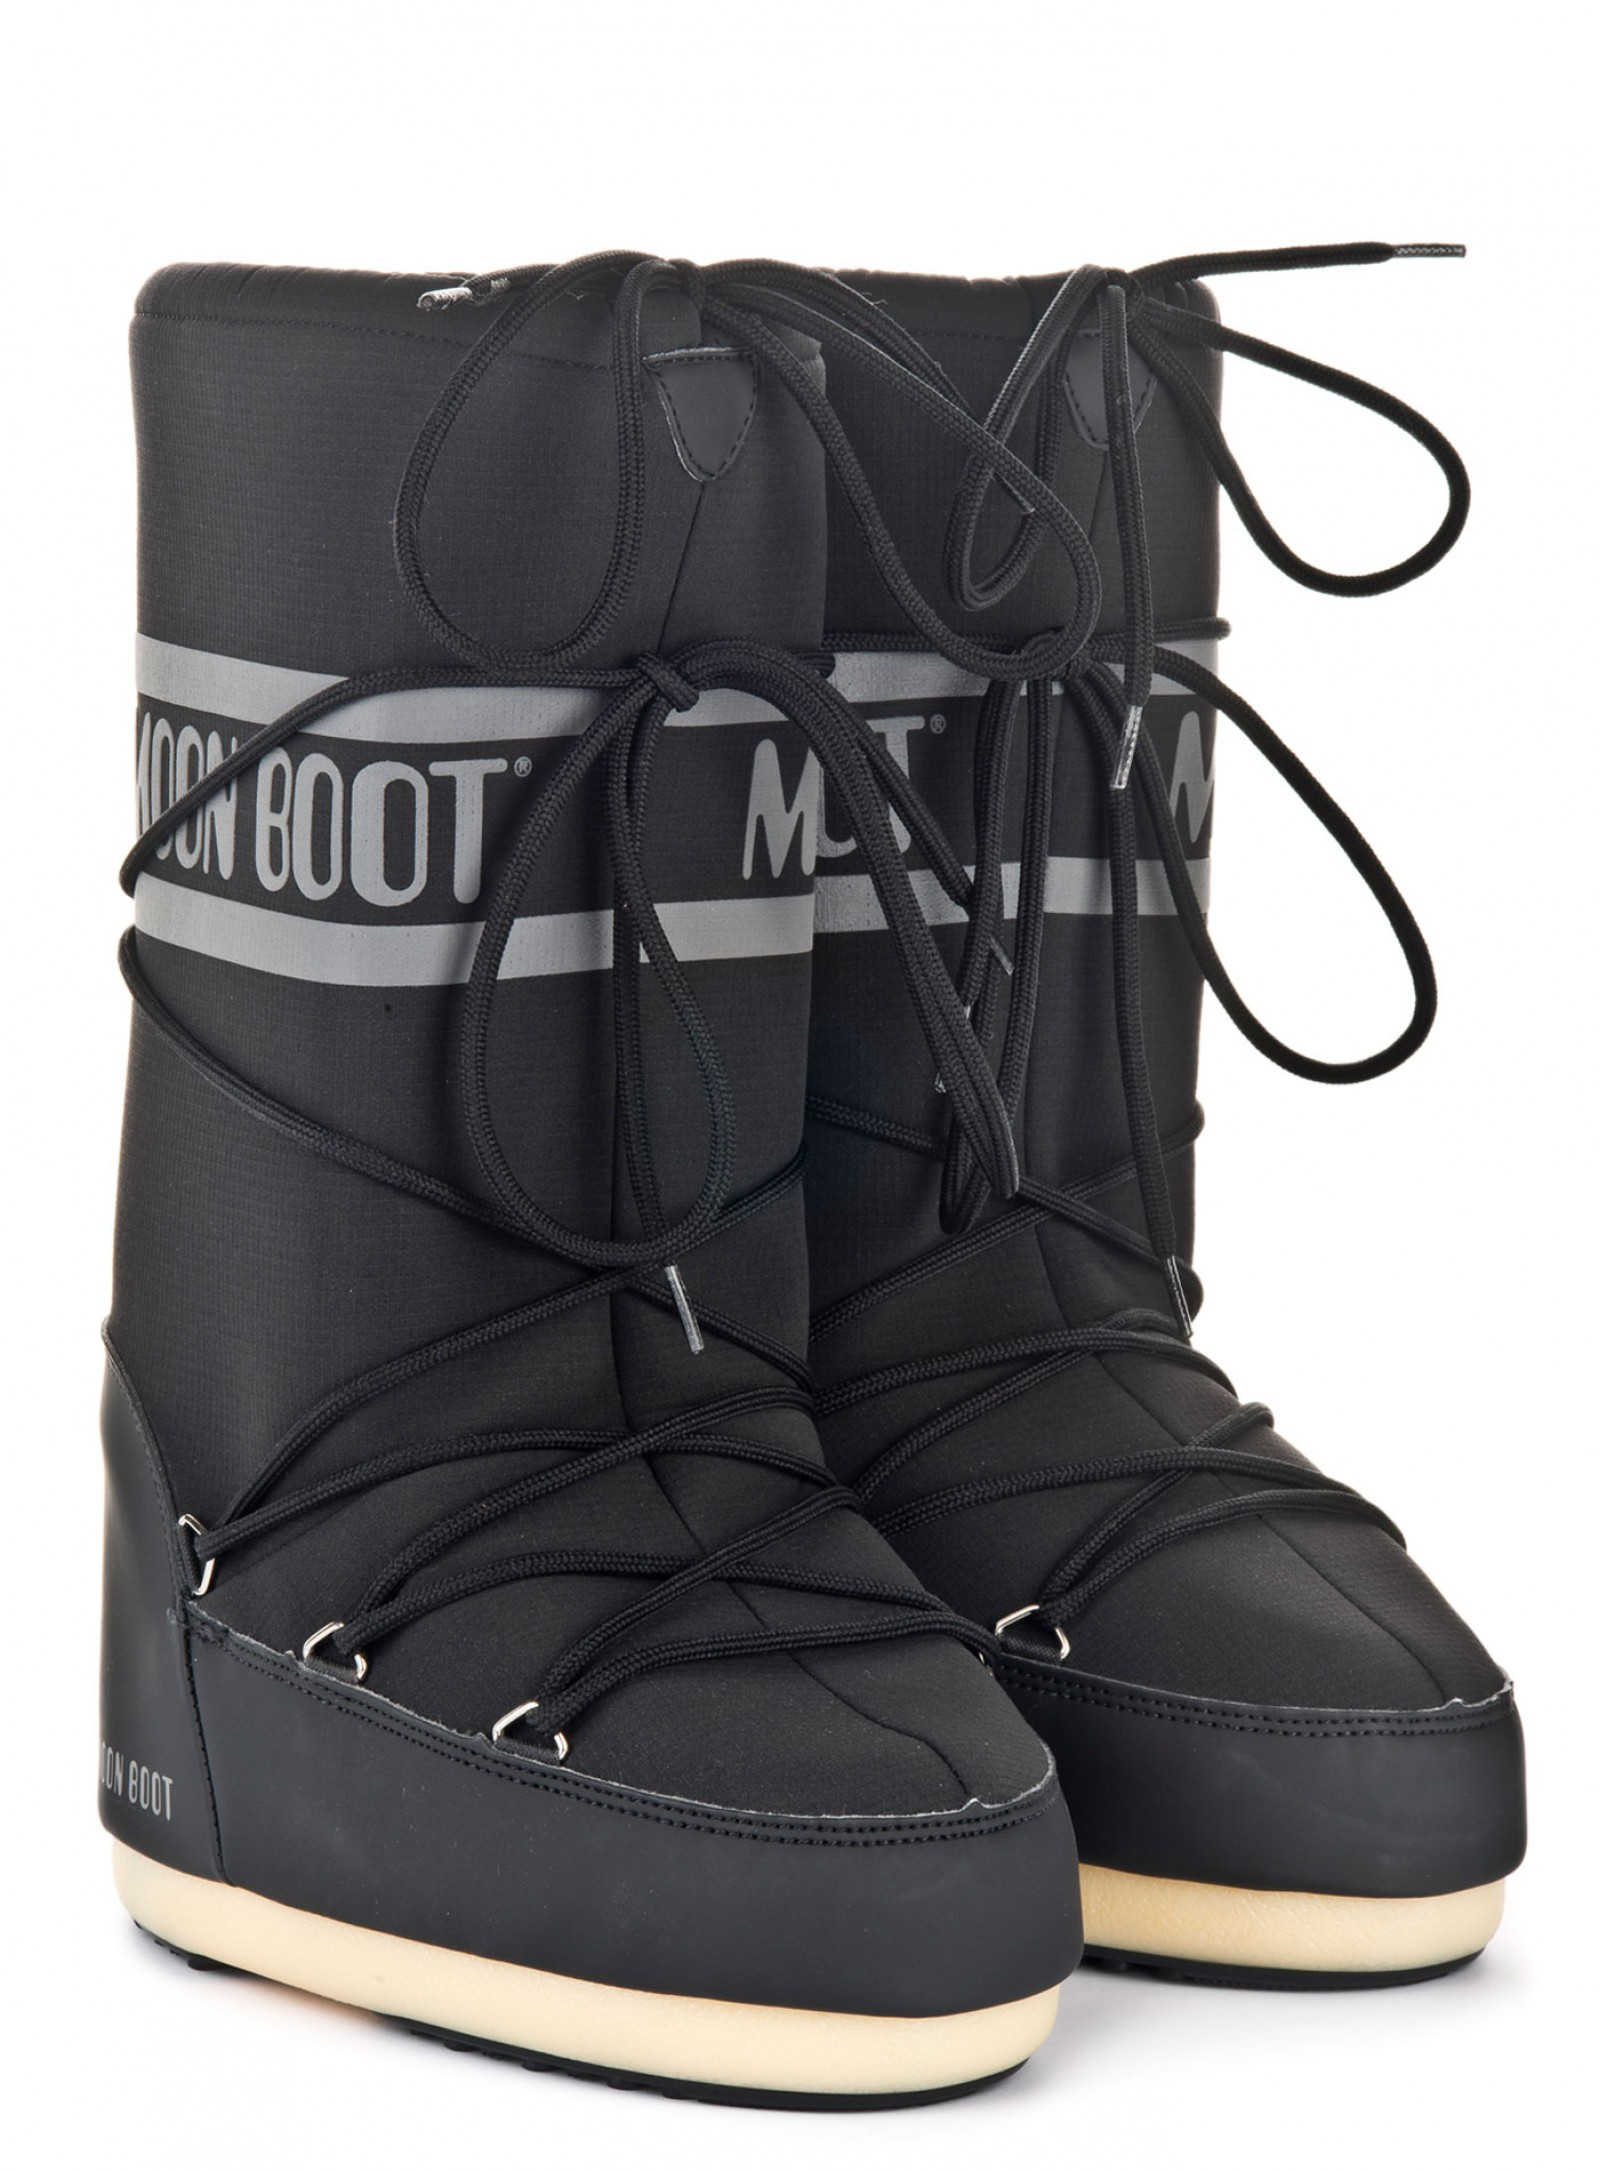 Мунбуты Tecnica Moon Boot Neo black